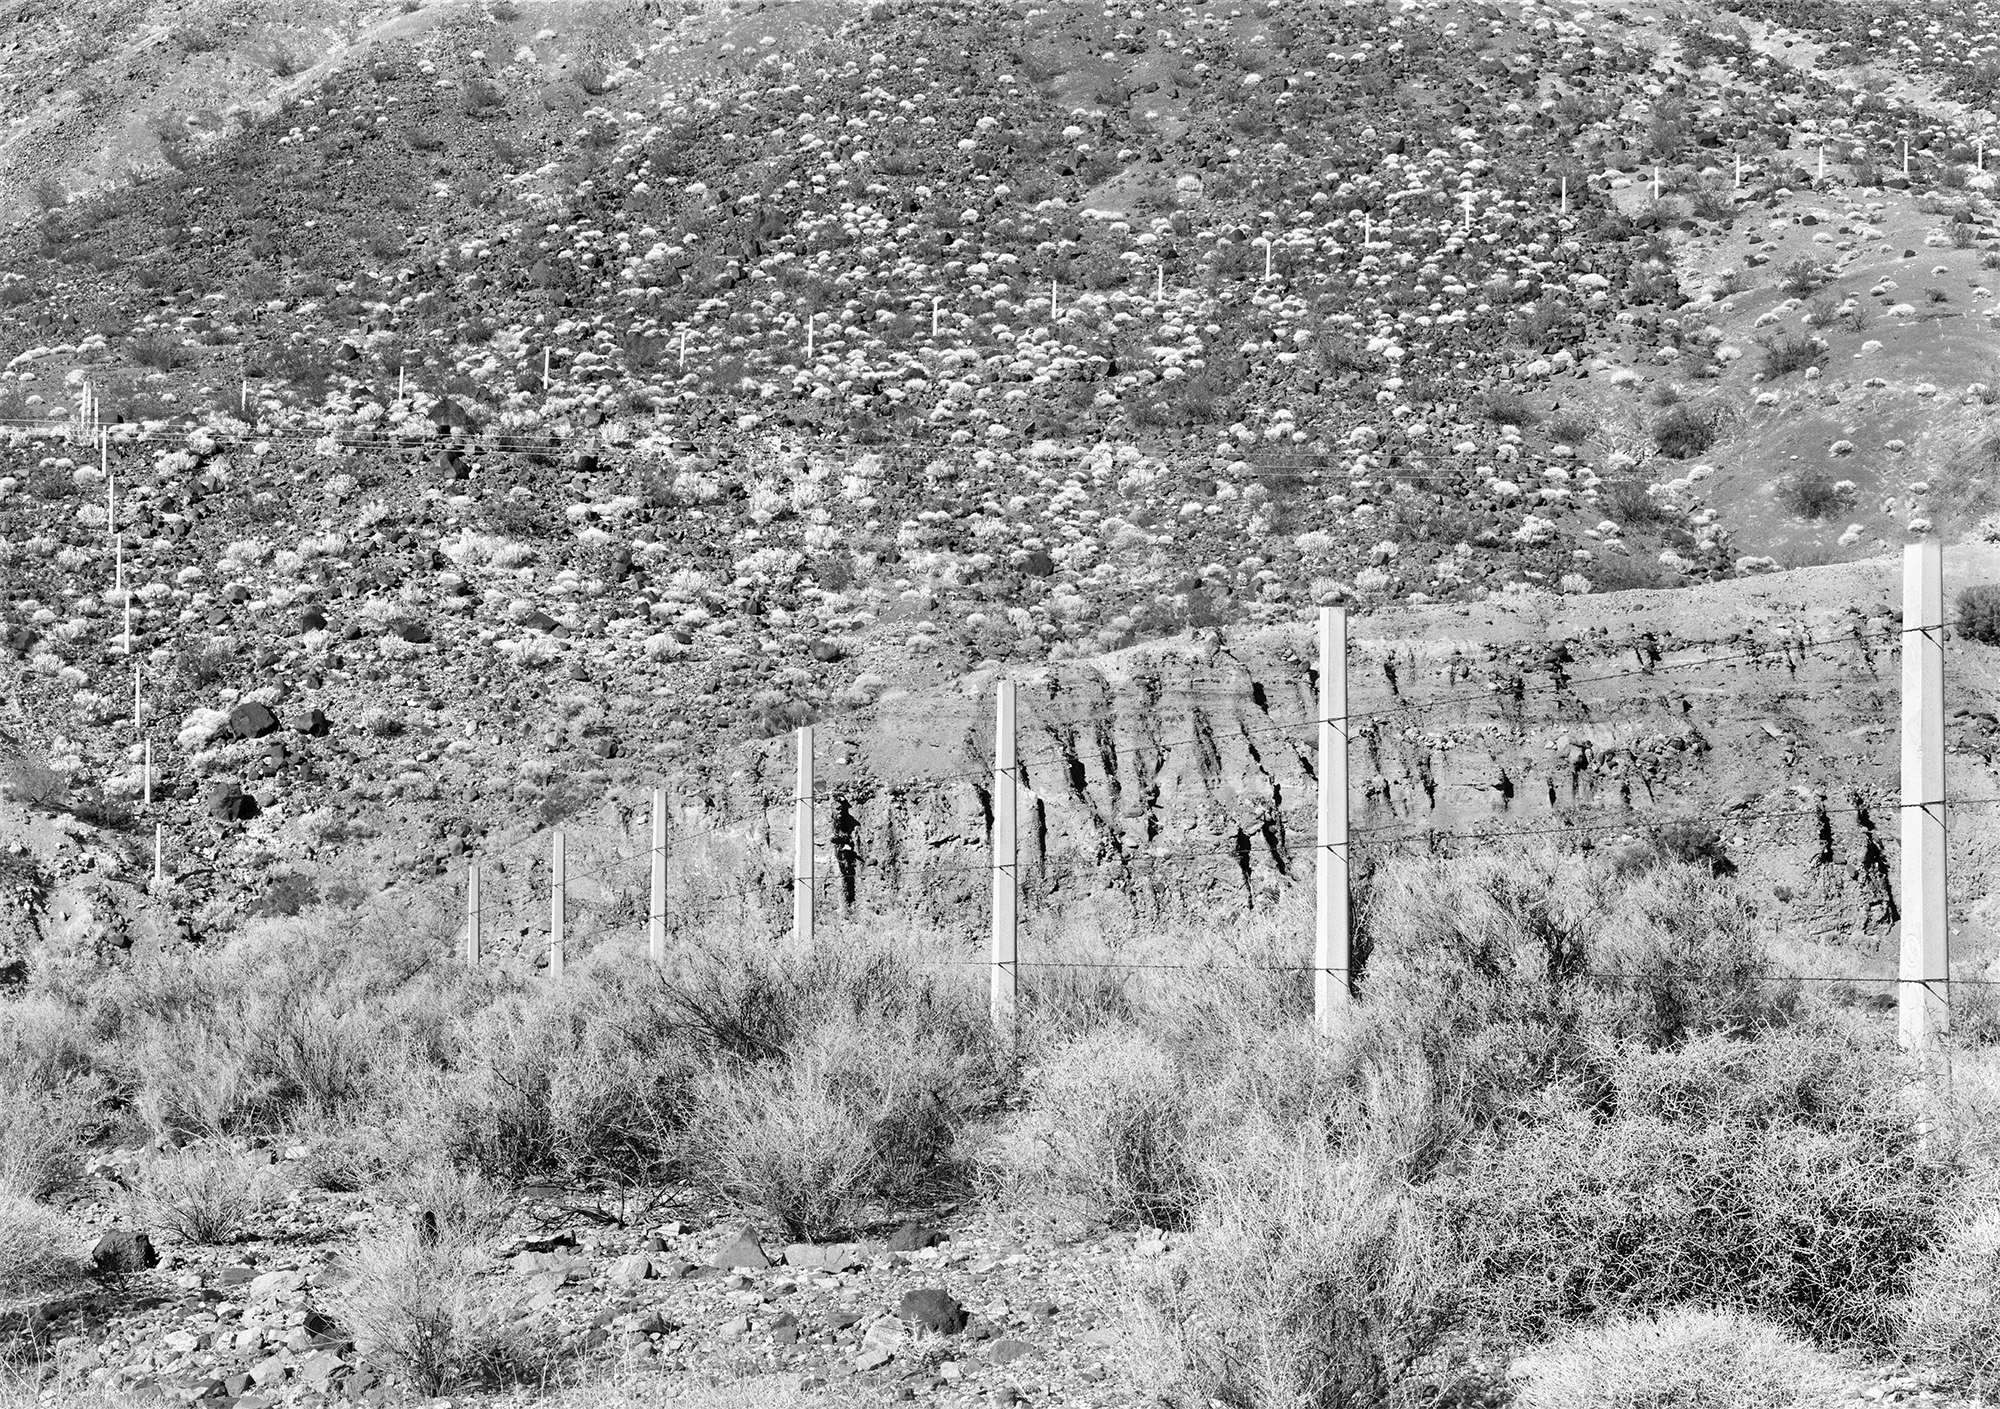 Fence Death Valley, California, USA, 1983